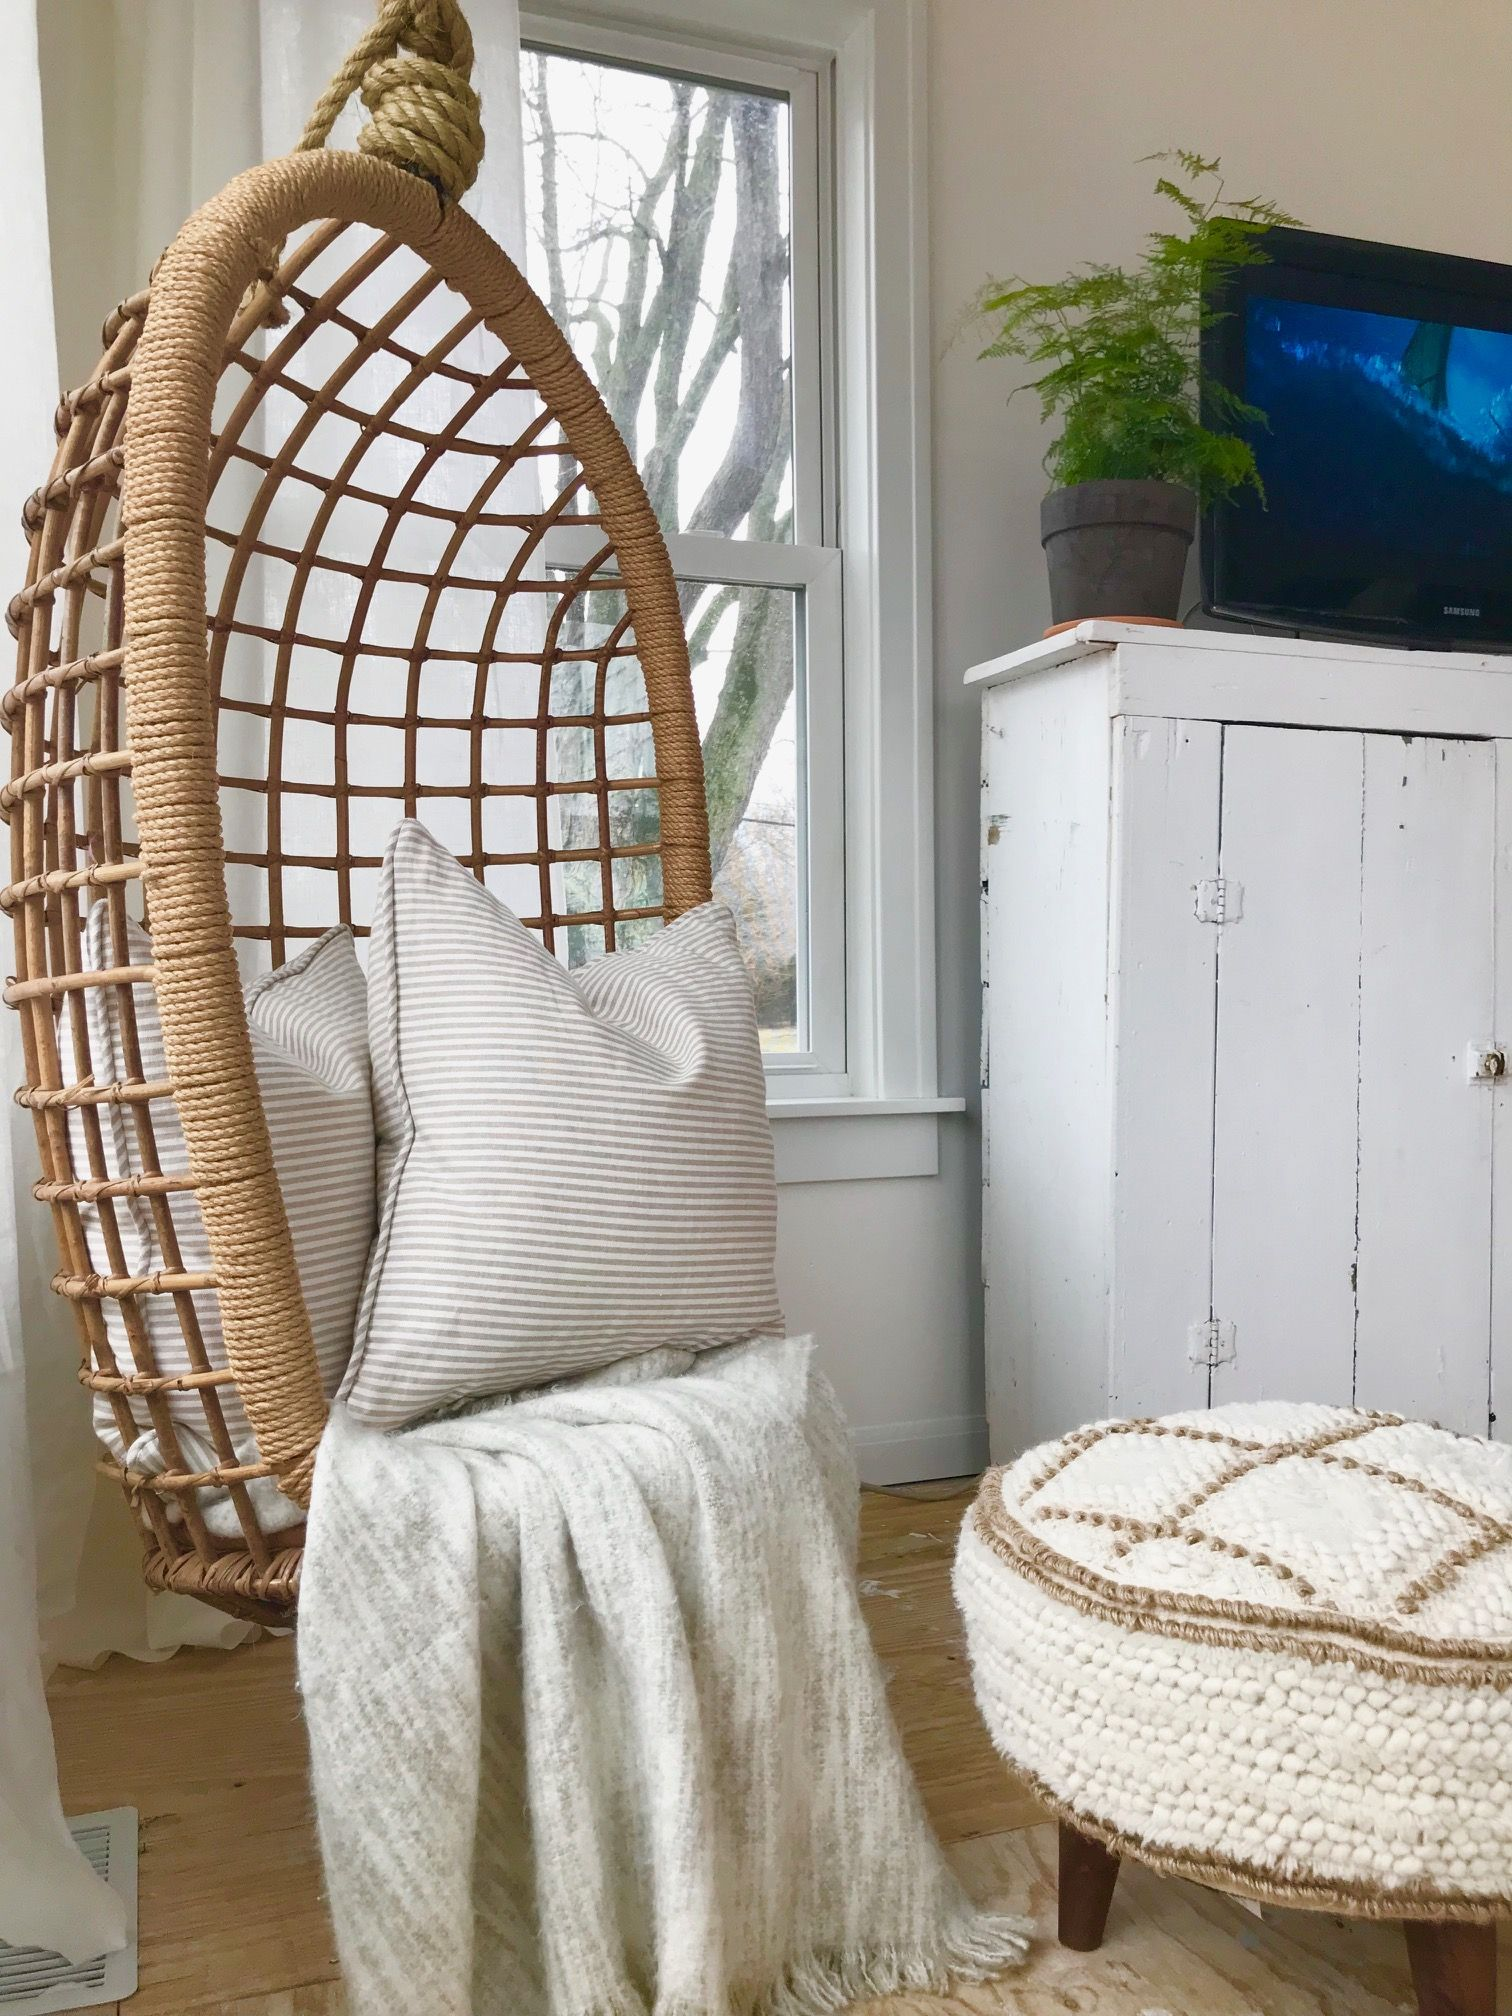 Indoor Hanging Chair With Stand New Sunroom Vintage Hanging Chair For The Home Hanging Chair